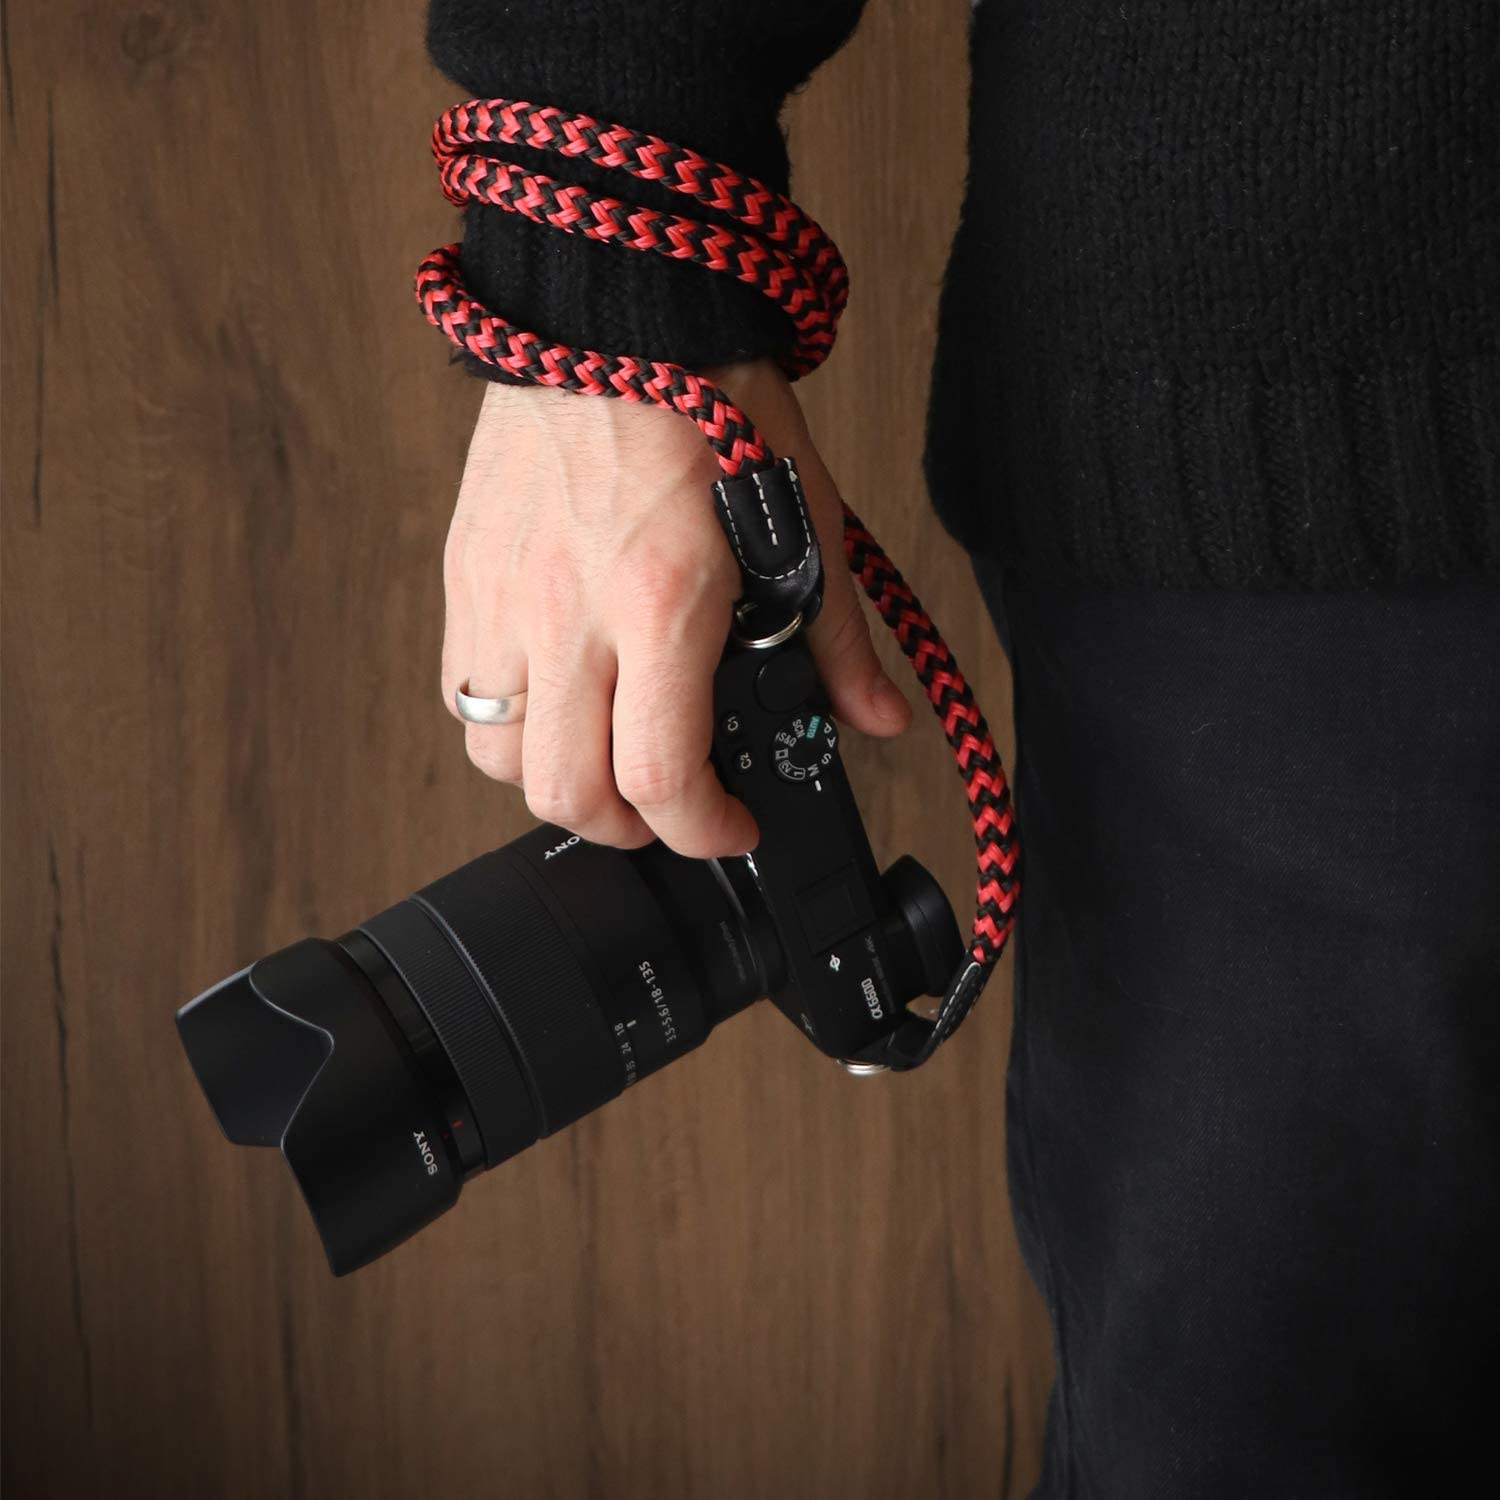 , Large100cm//39inc Black MegaGear MG941 Cotton Strap Comfort Padding Security for All Cameras